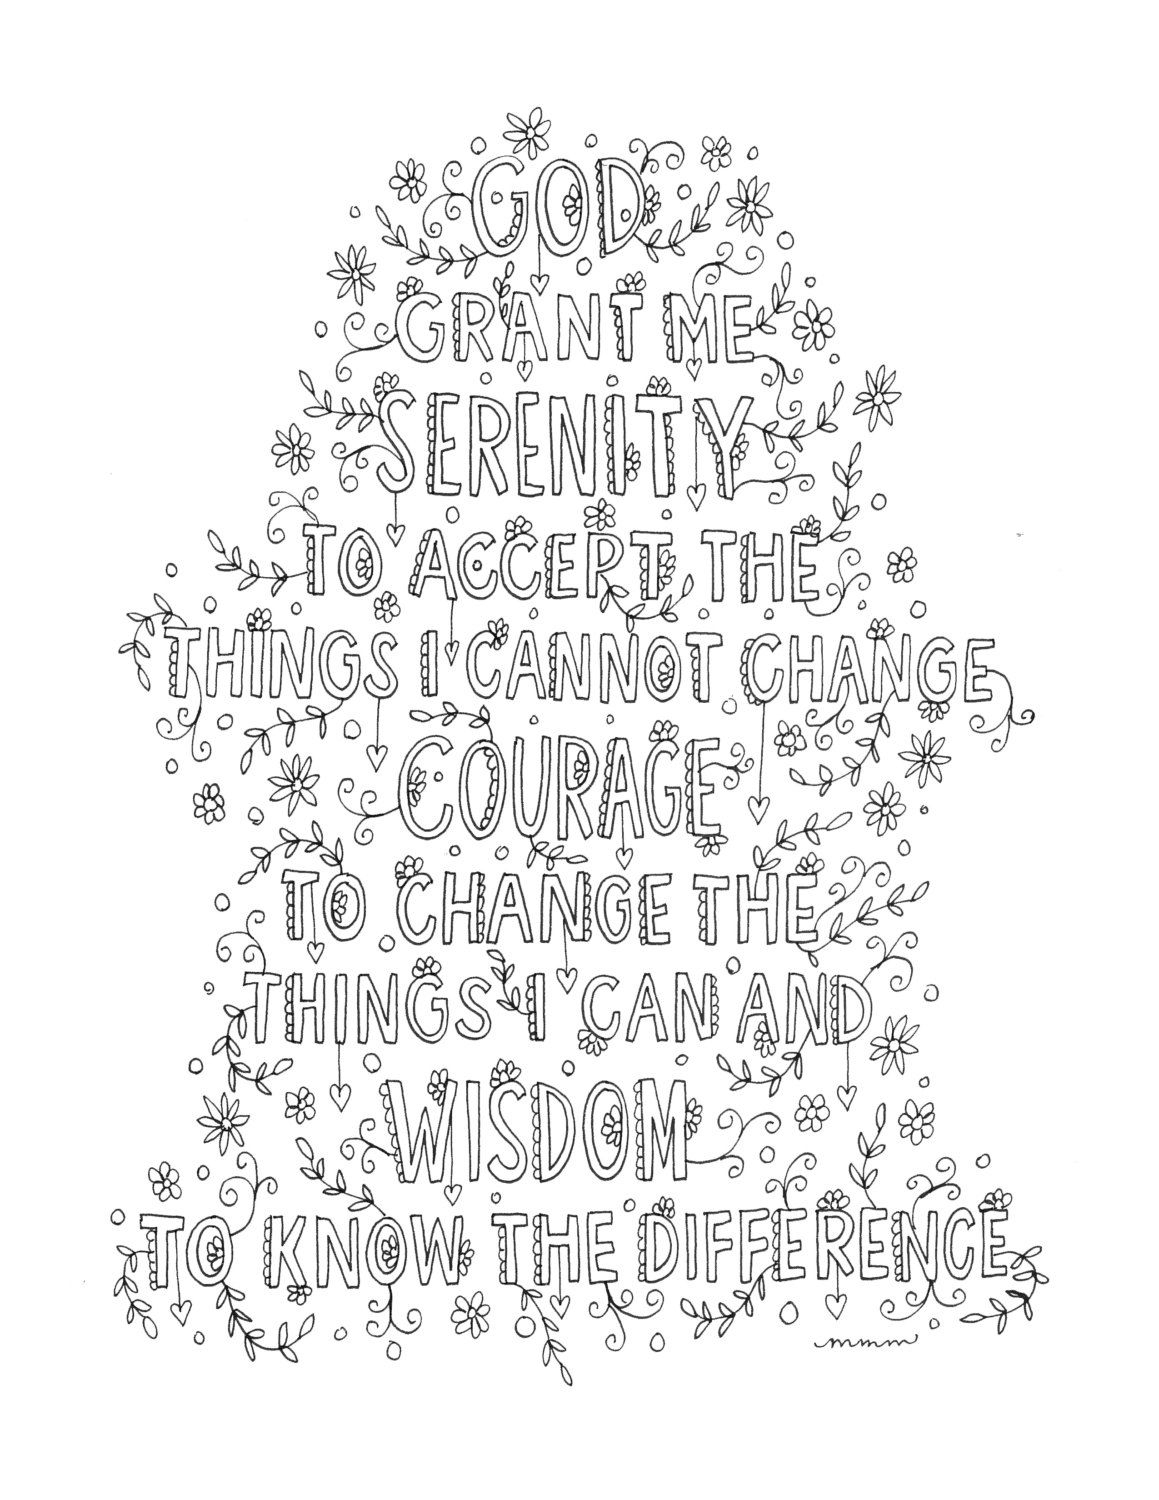 Serenity Prayer Quote Coloring Page -Instant Download, Line Art - Free Printable Serenity Prayer